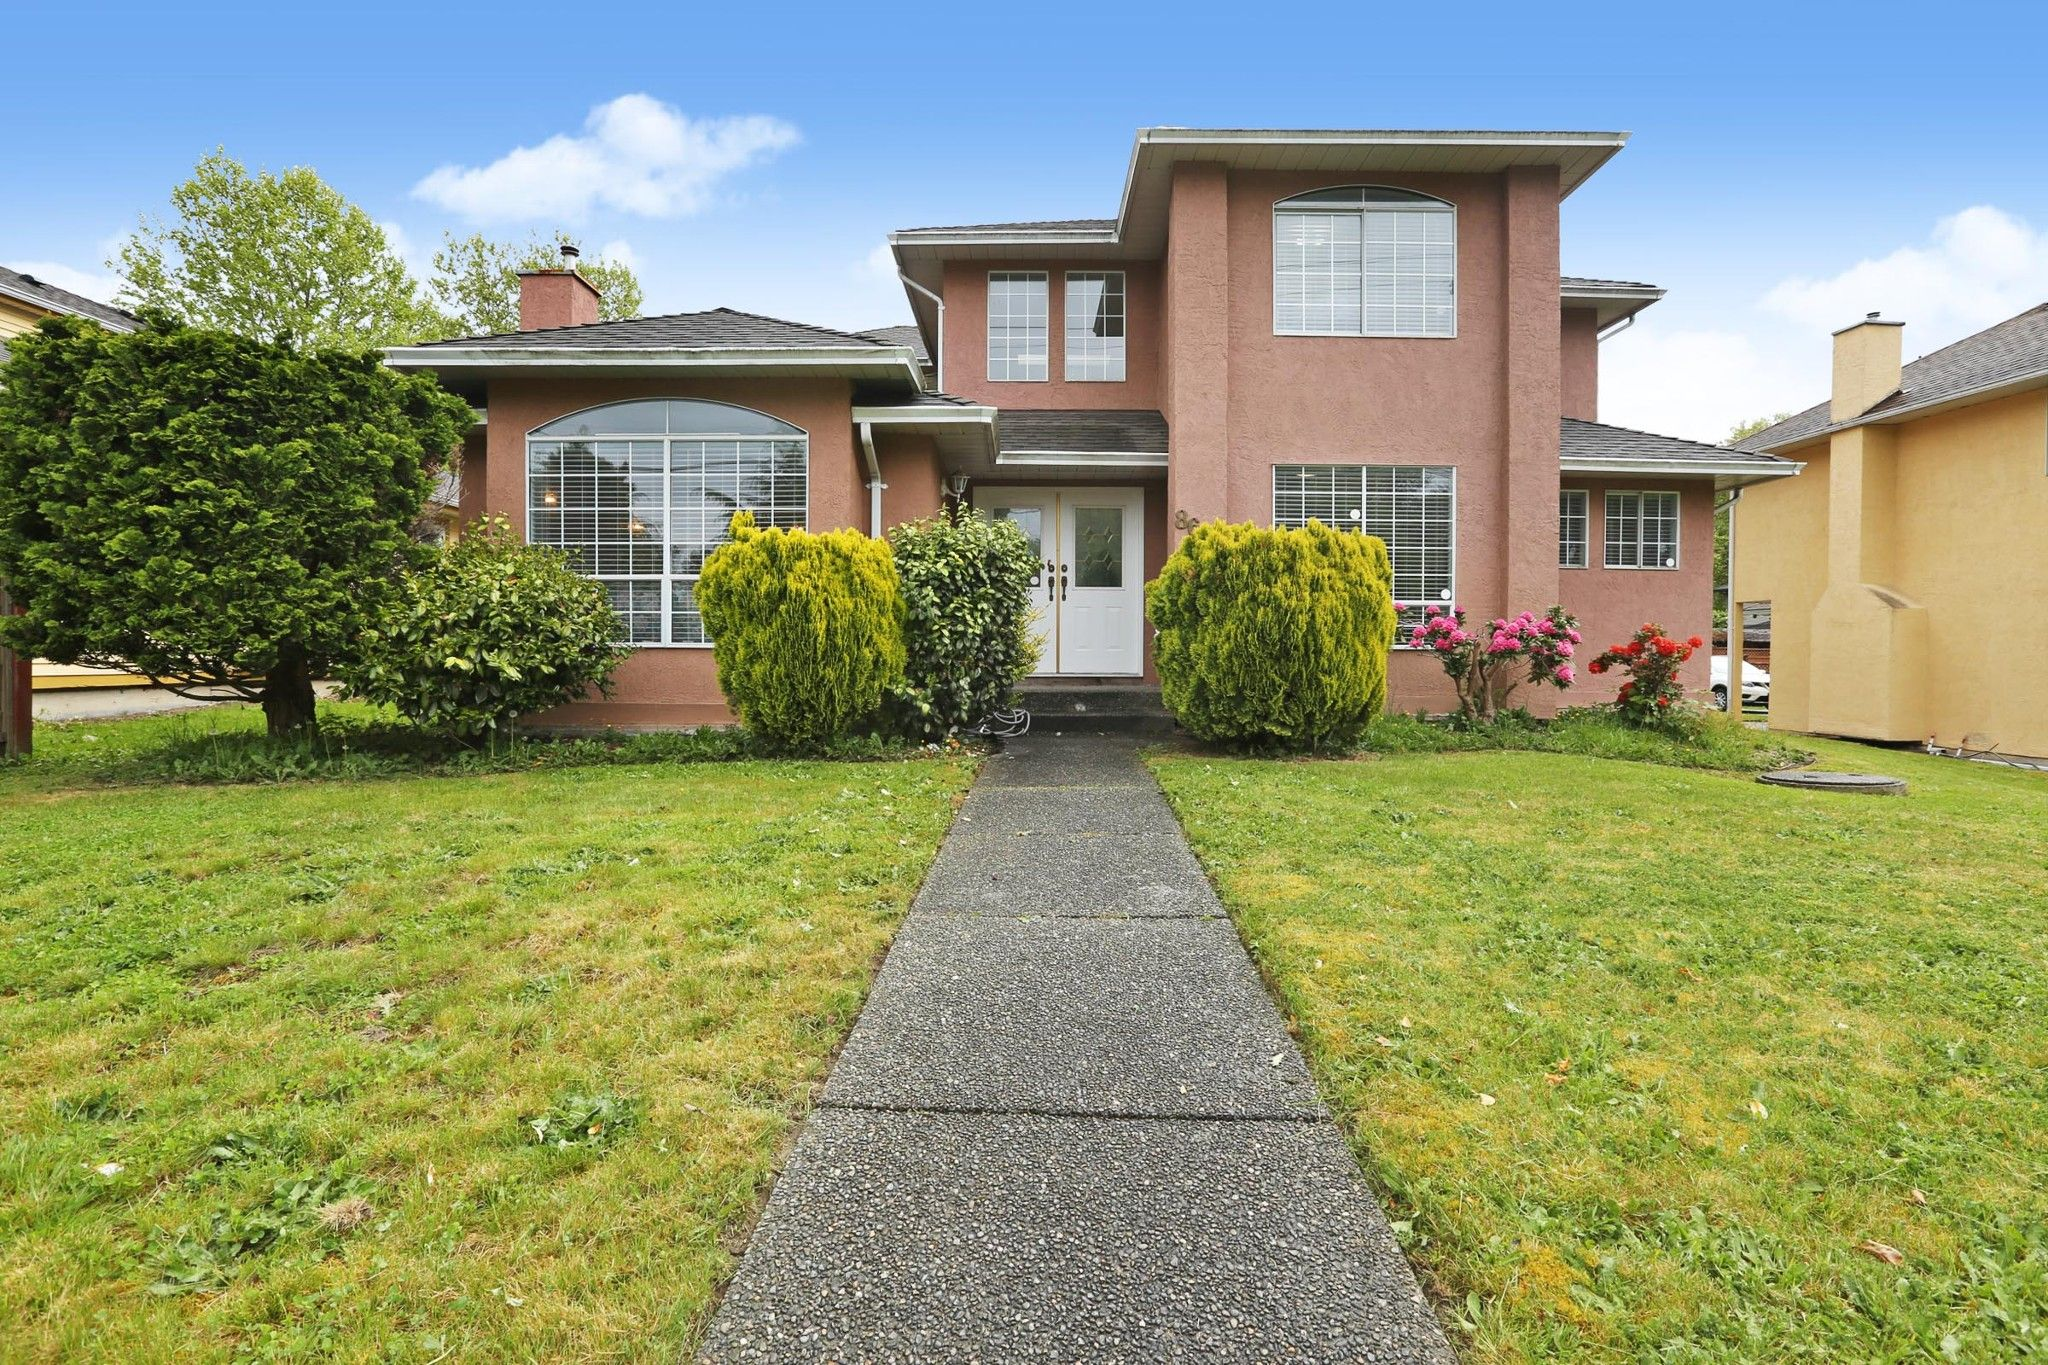 """Main Photo: 8648 140 Street in Surrey: Bear Creek Green Timbers House for sale in """"BROOKSIDE"""" : MLS®# R2578458"""